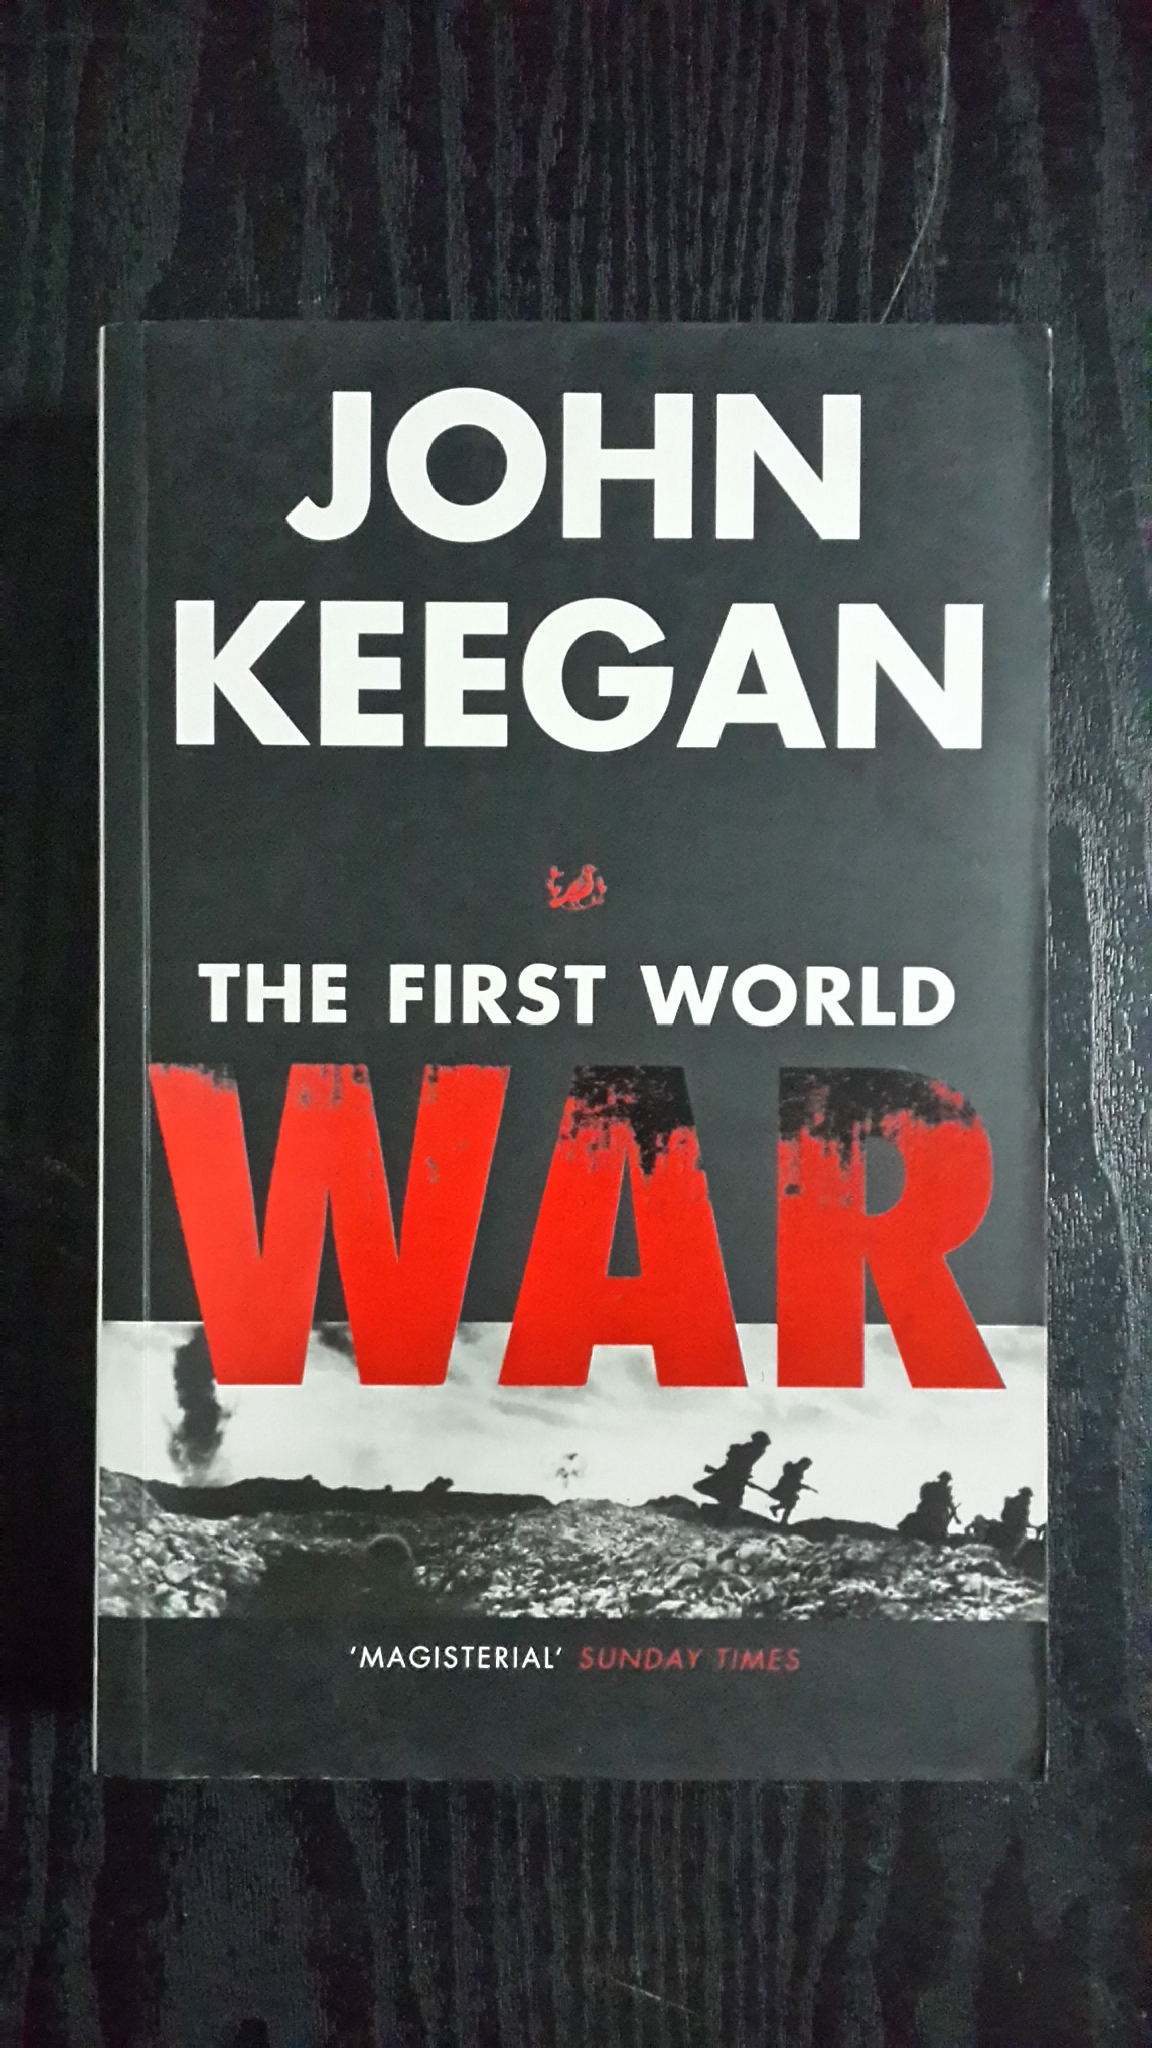 THE FIRST WORLD WAR / JOHN KEEGAN